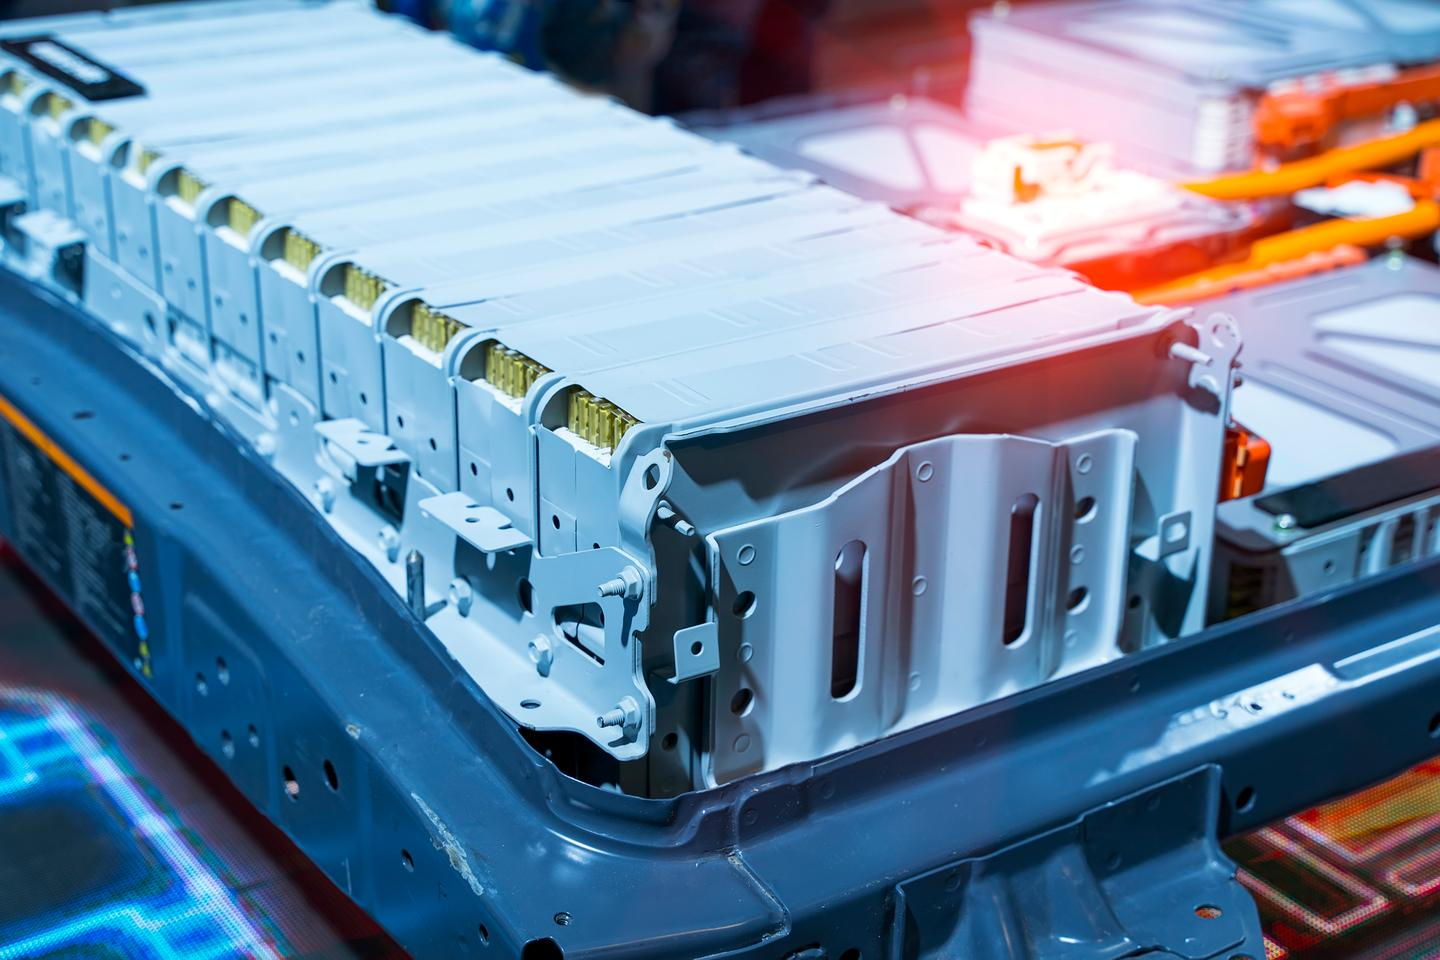 Some scientists are turning to robotics in an effort to more easily recycle electric vehicle batteries in the future